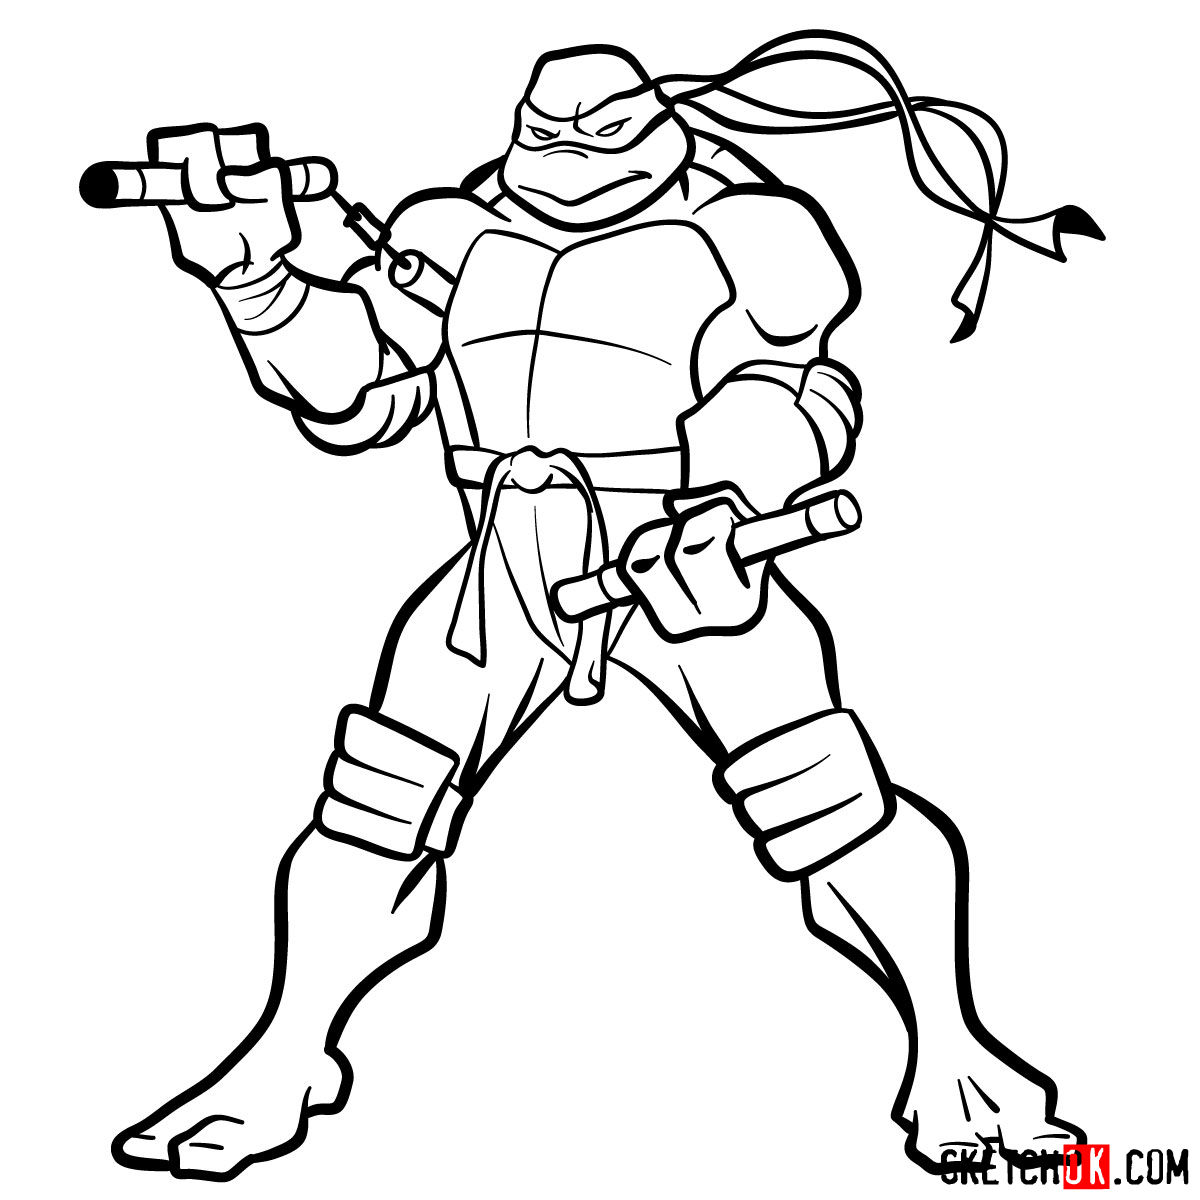 How to draw Michaelangelo ninja turtle